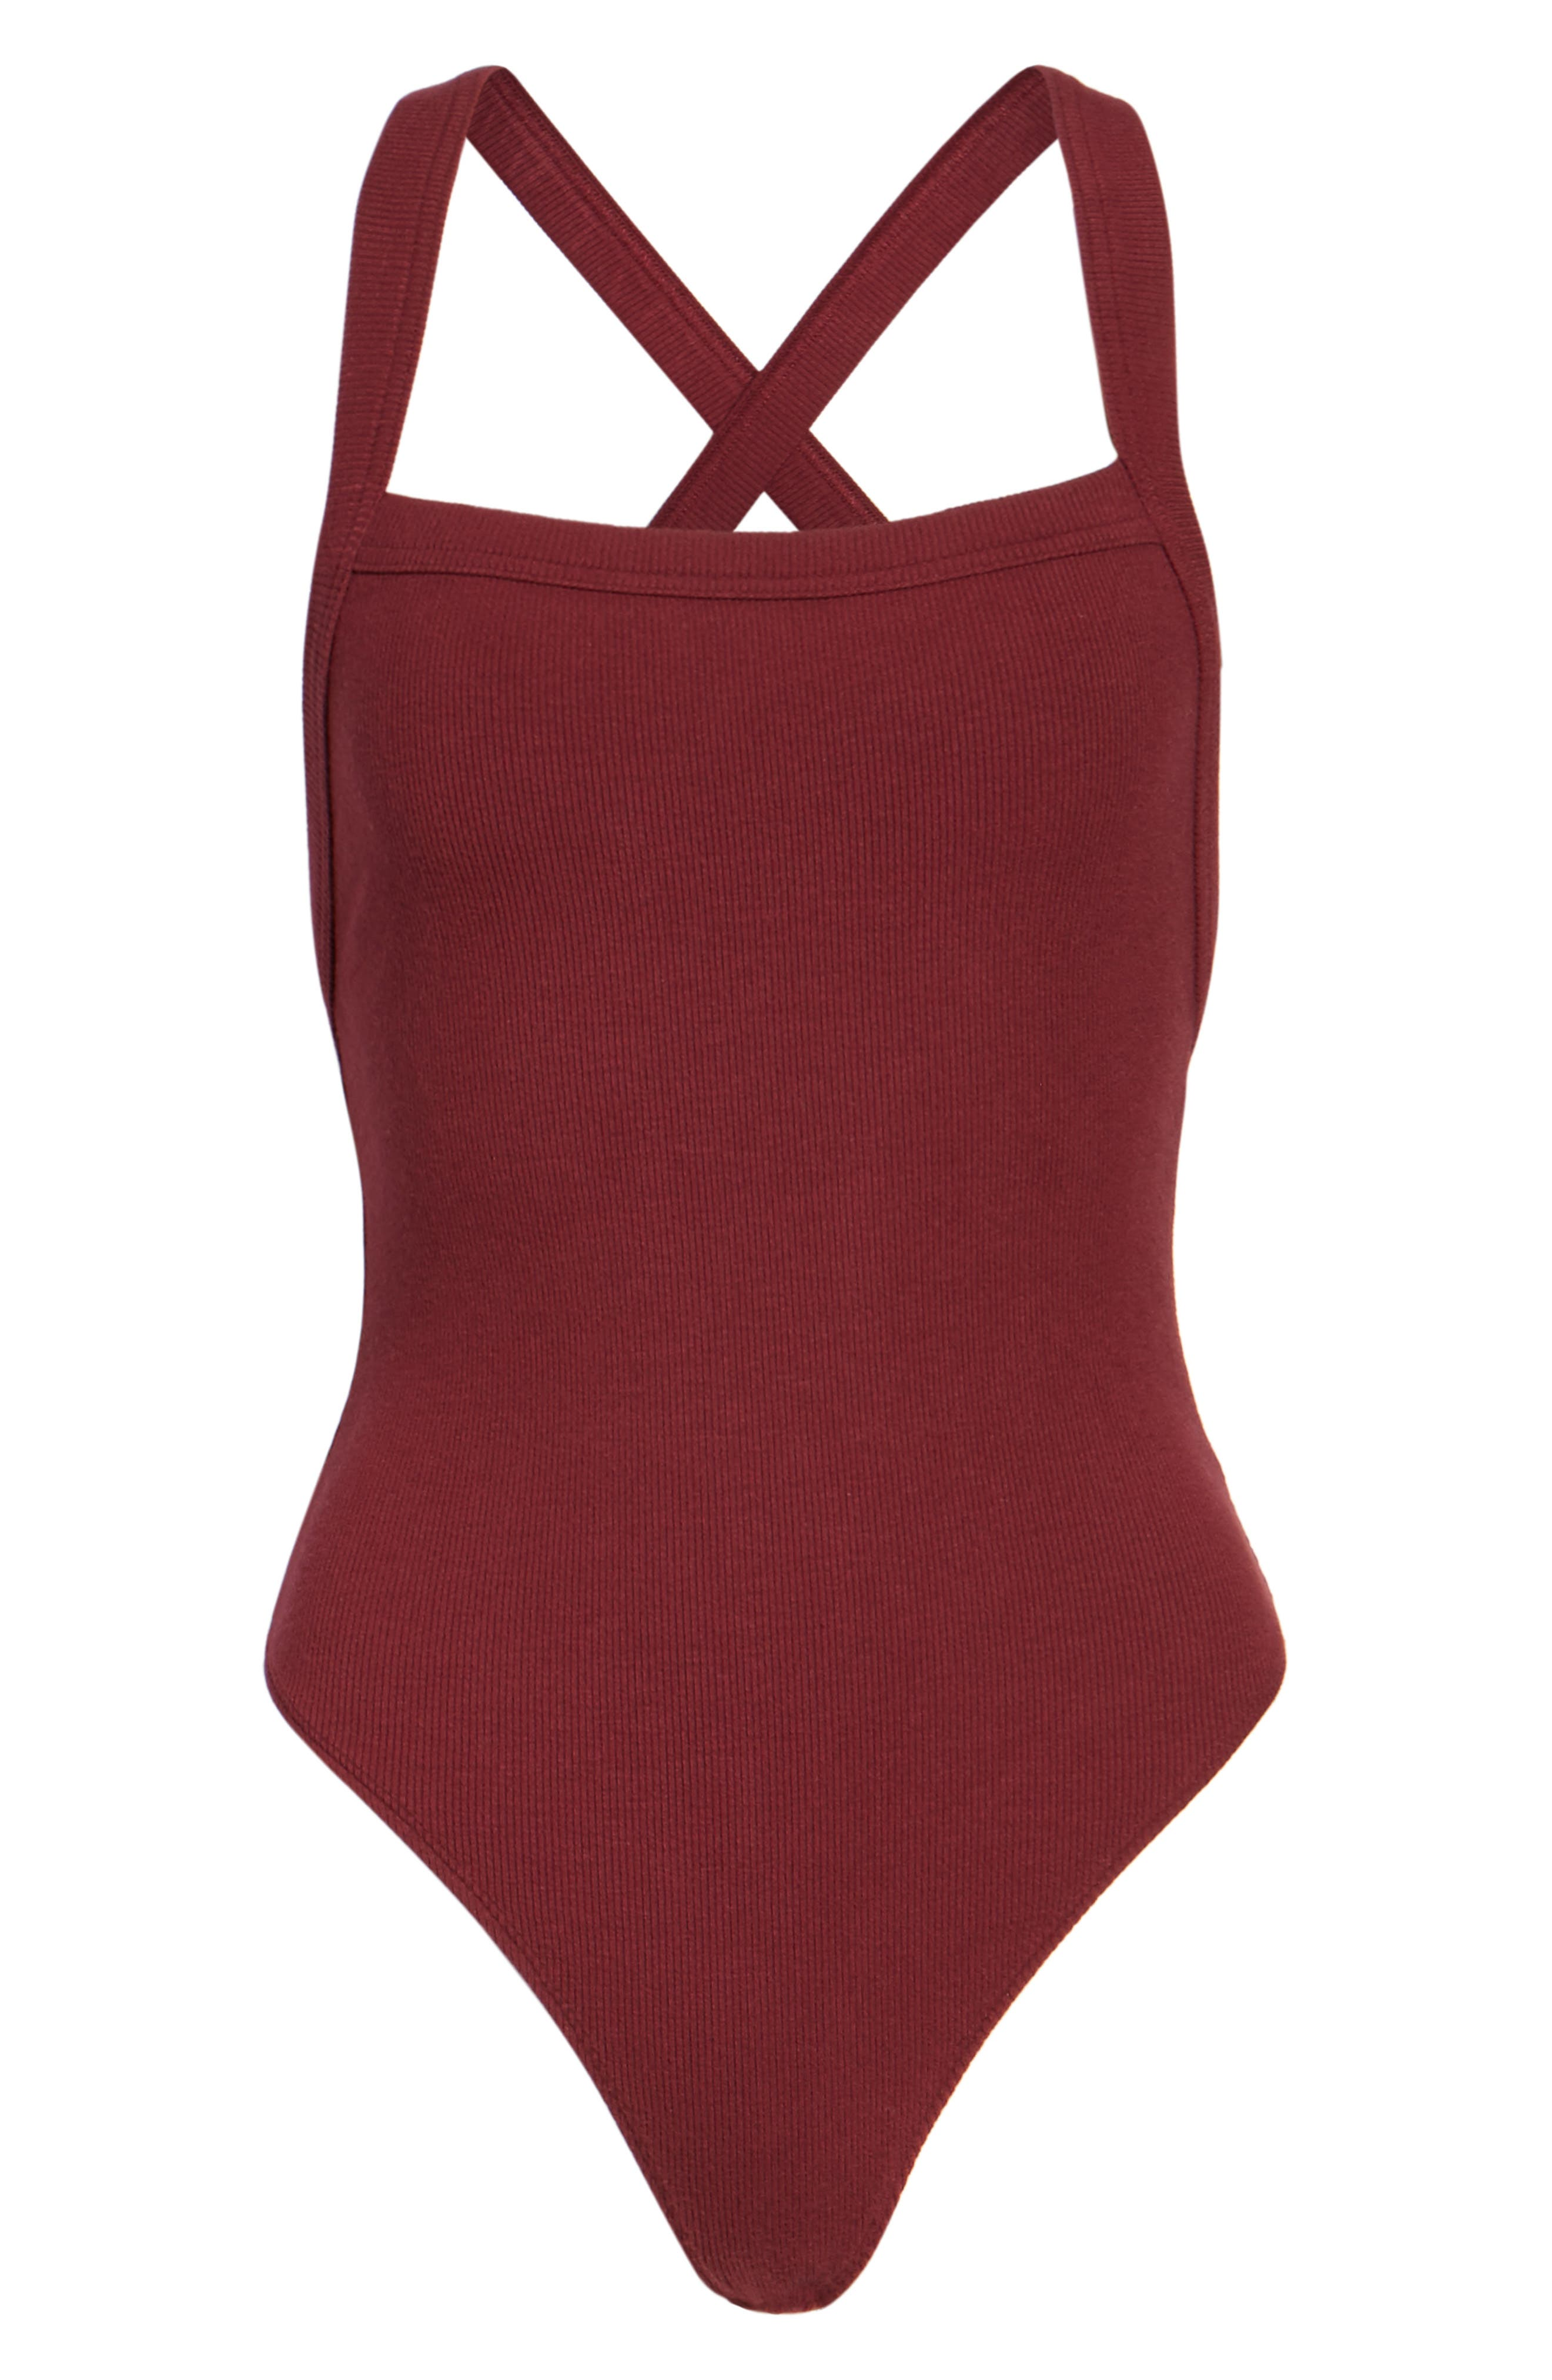 Thong Bodysuit,                             Alternate thumbnail 6, color,                             930